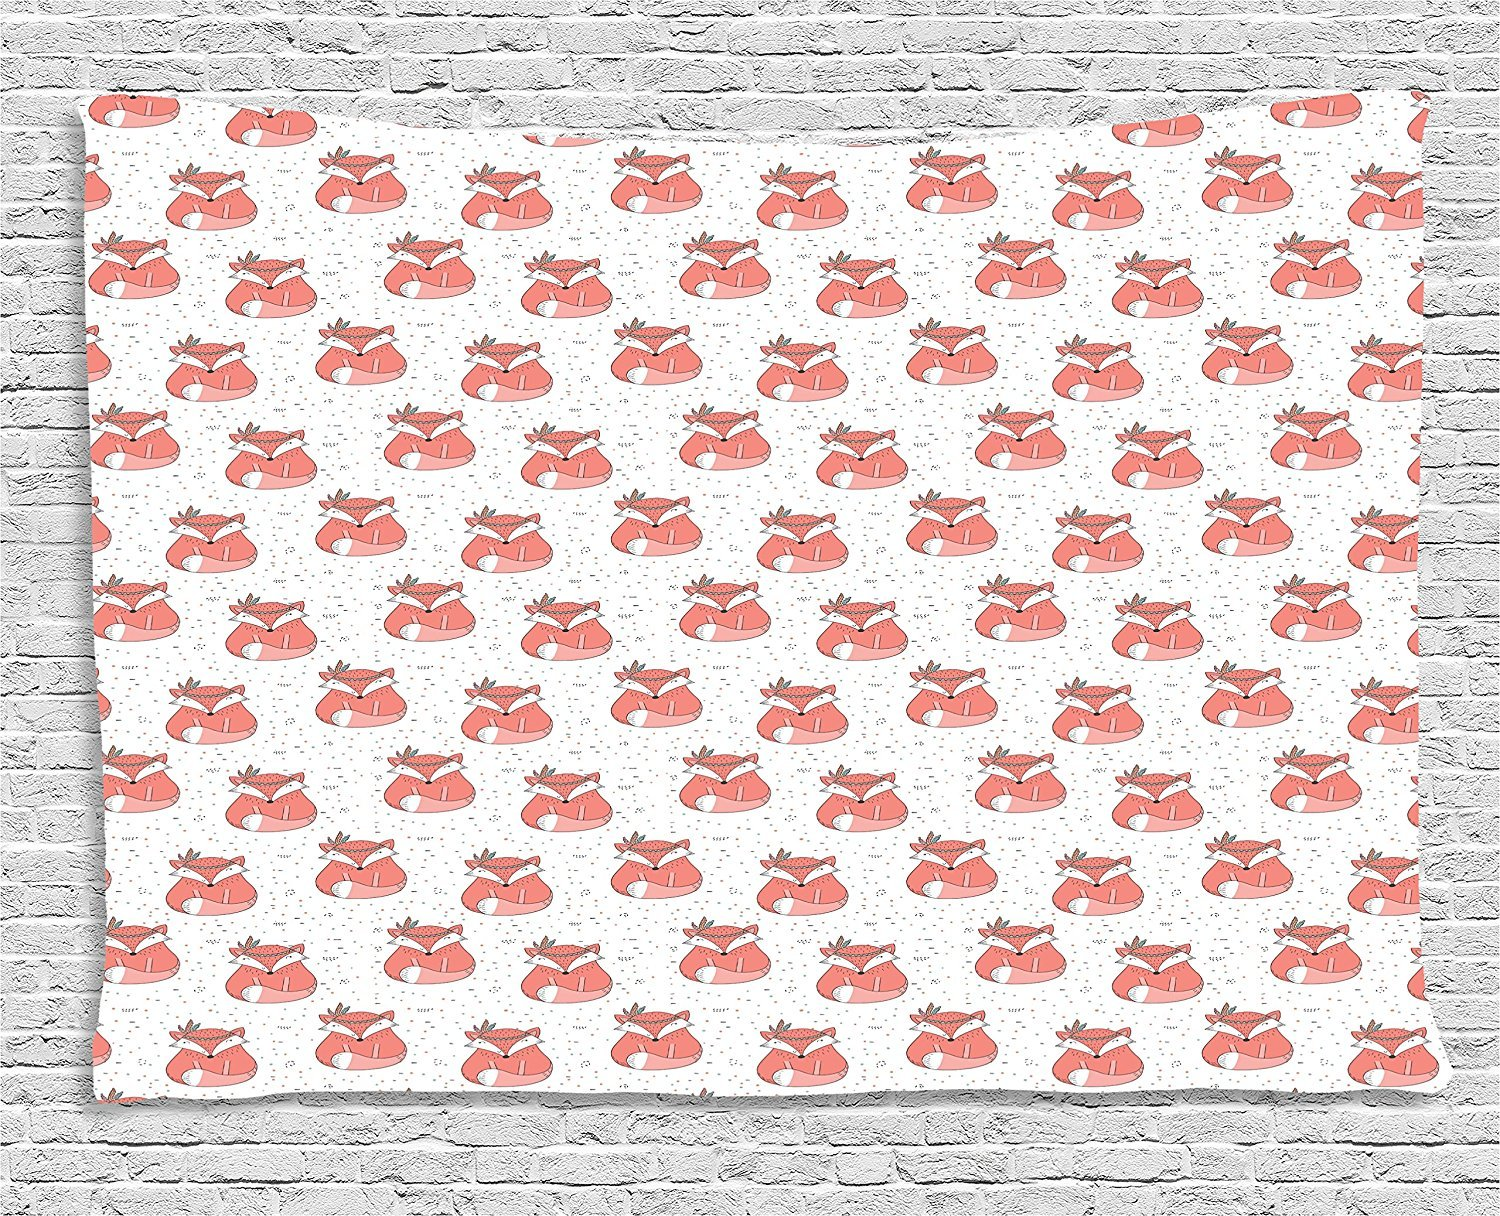 Fox Tapestry, Ethnic Inspirations in Hand Drawn Forest Animal Pattern with Dotted Background, Wall Hanging for Bedroom Living Room Dorm, 80 W X 60 L Inches, Coral Seafoam Black